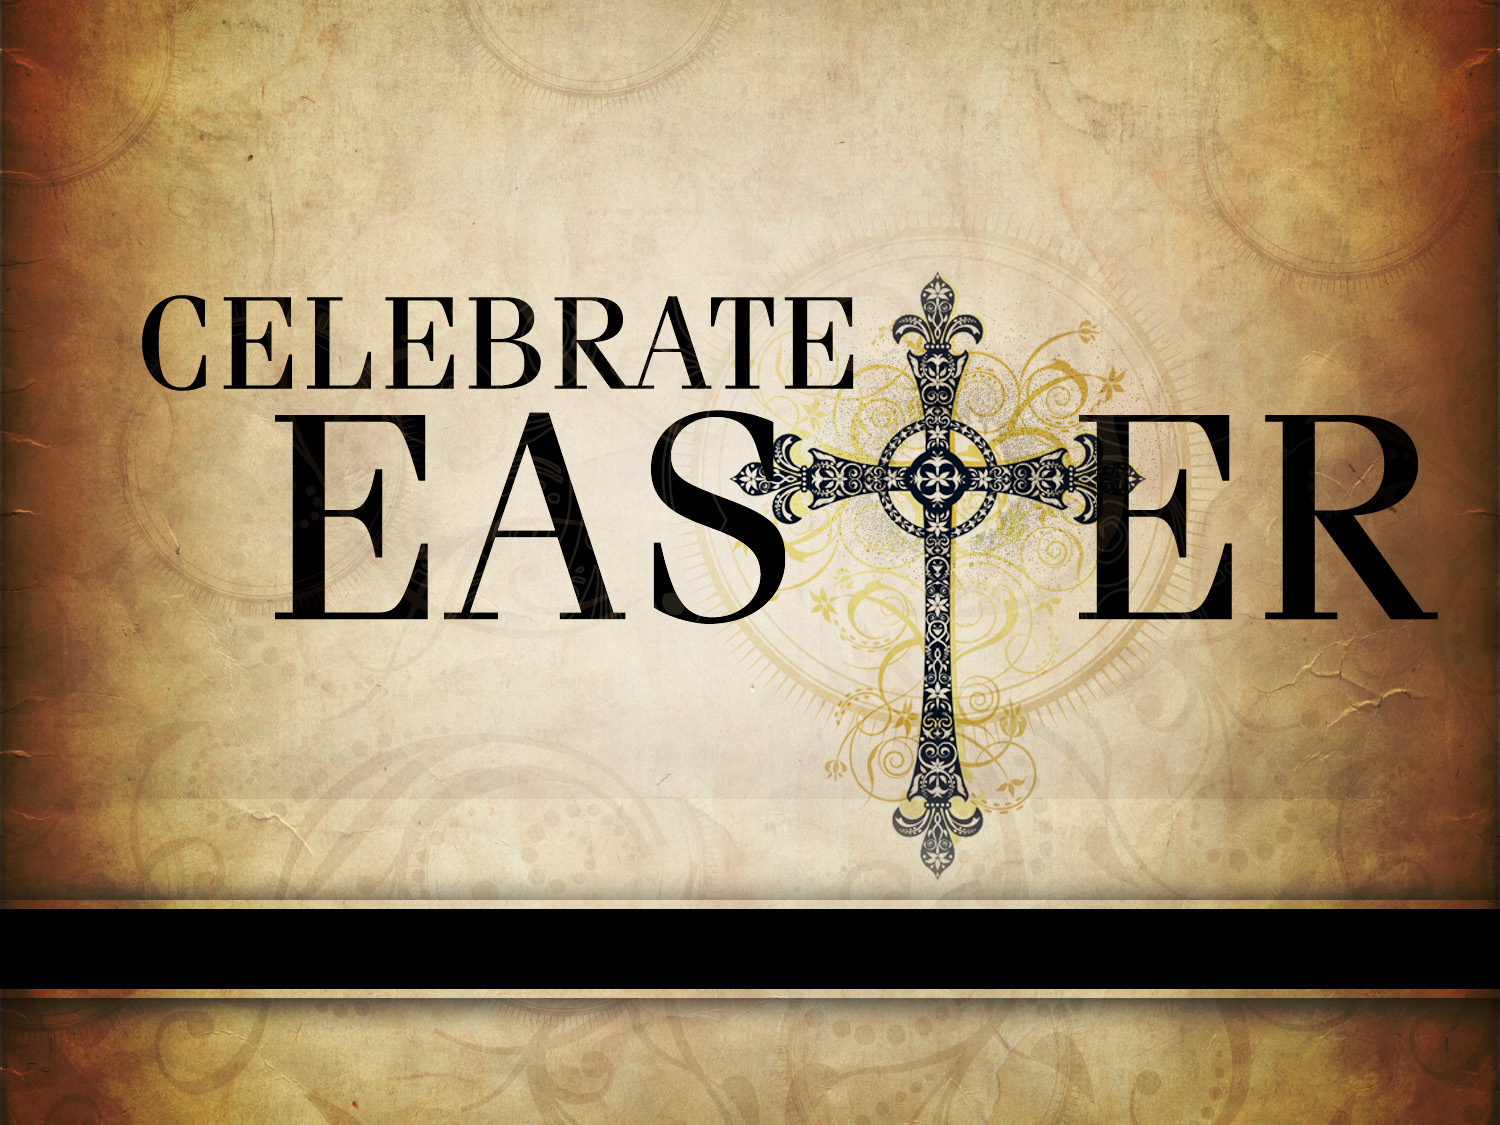 PicturesPool: Easter Sunday Greetings